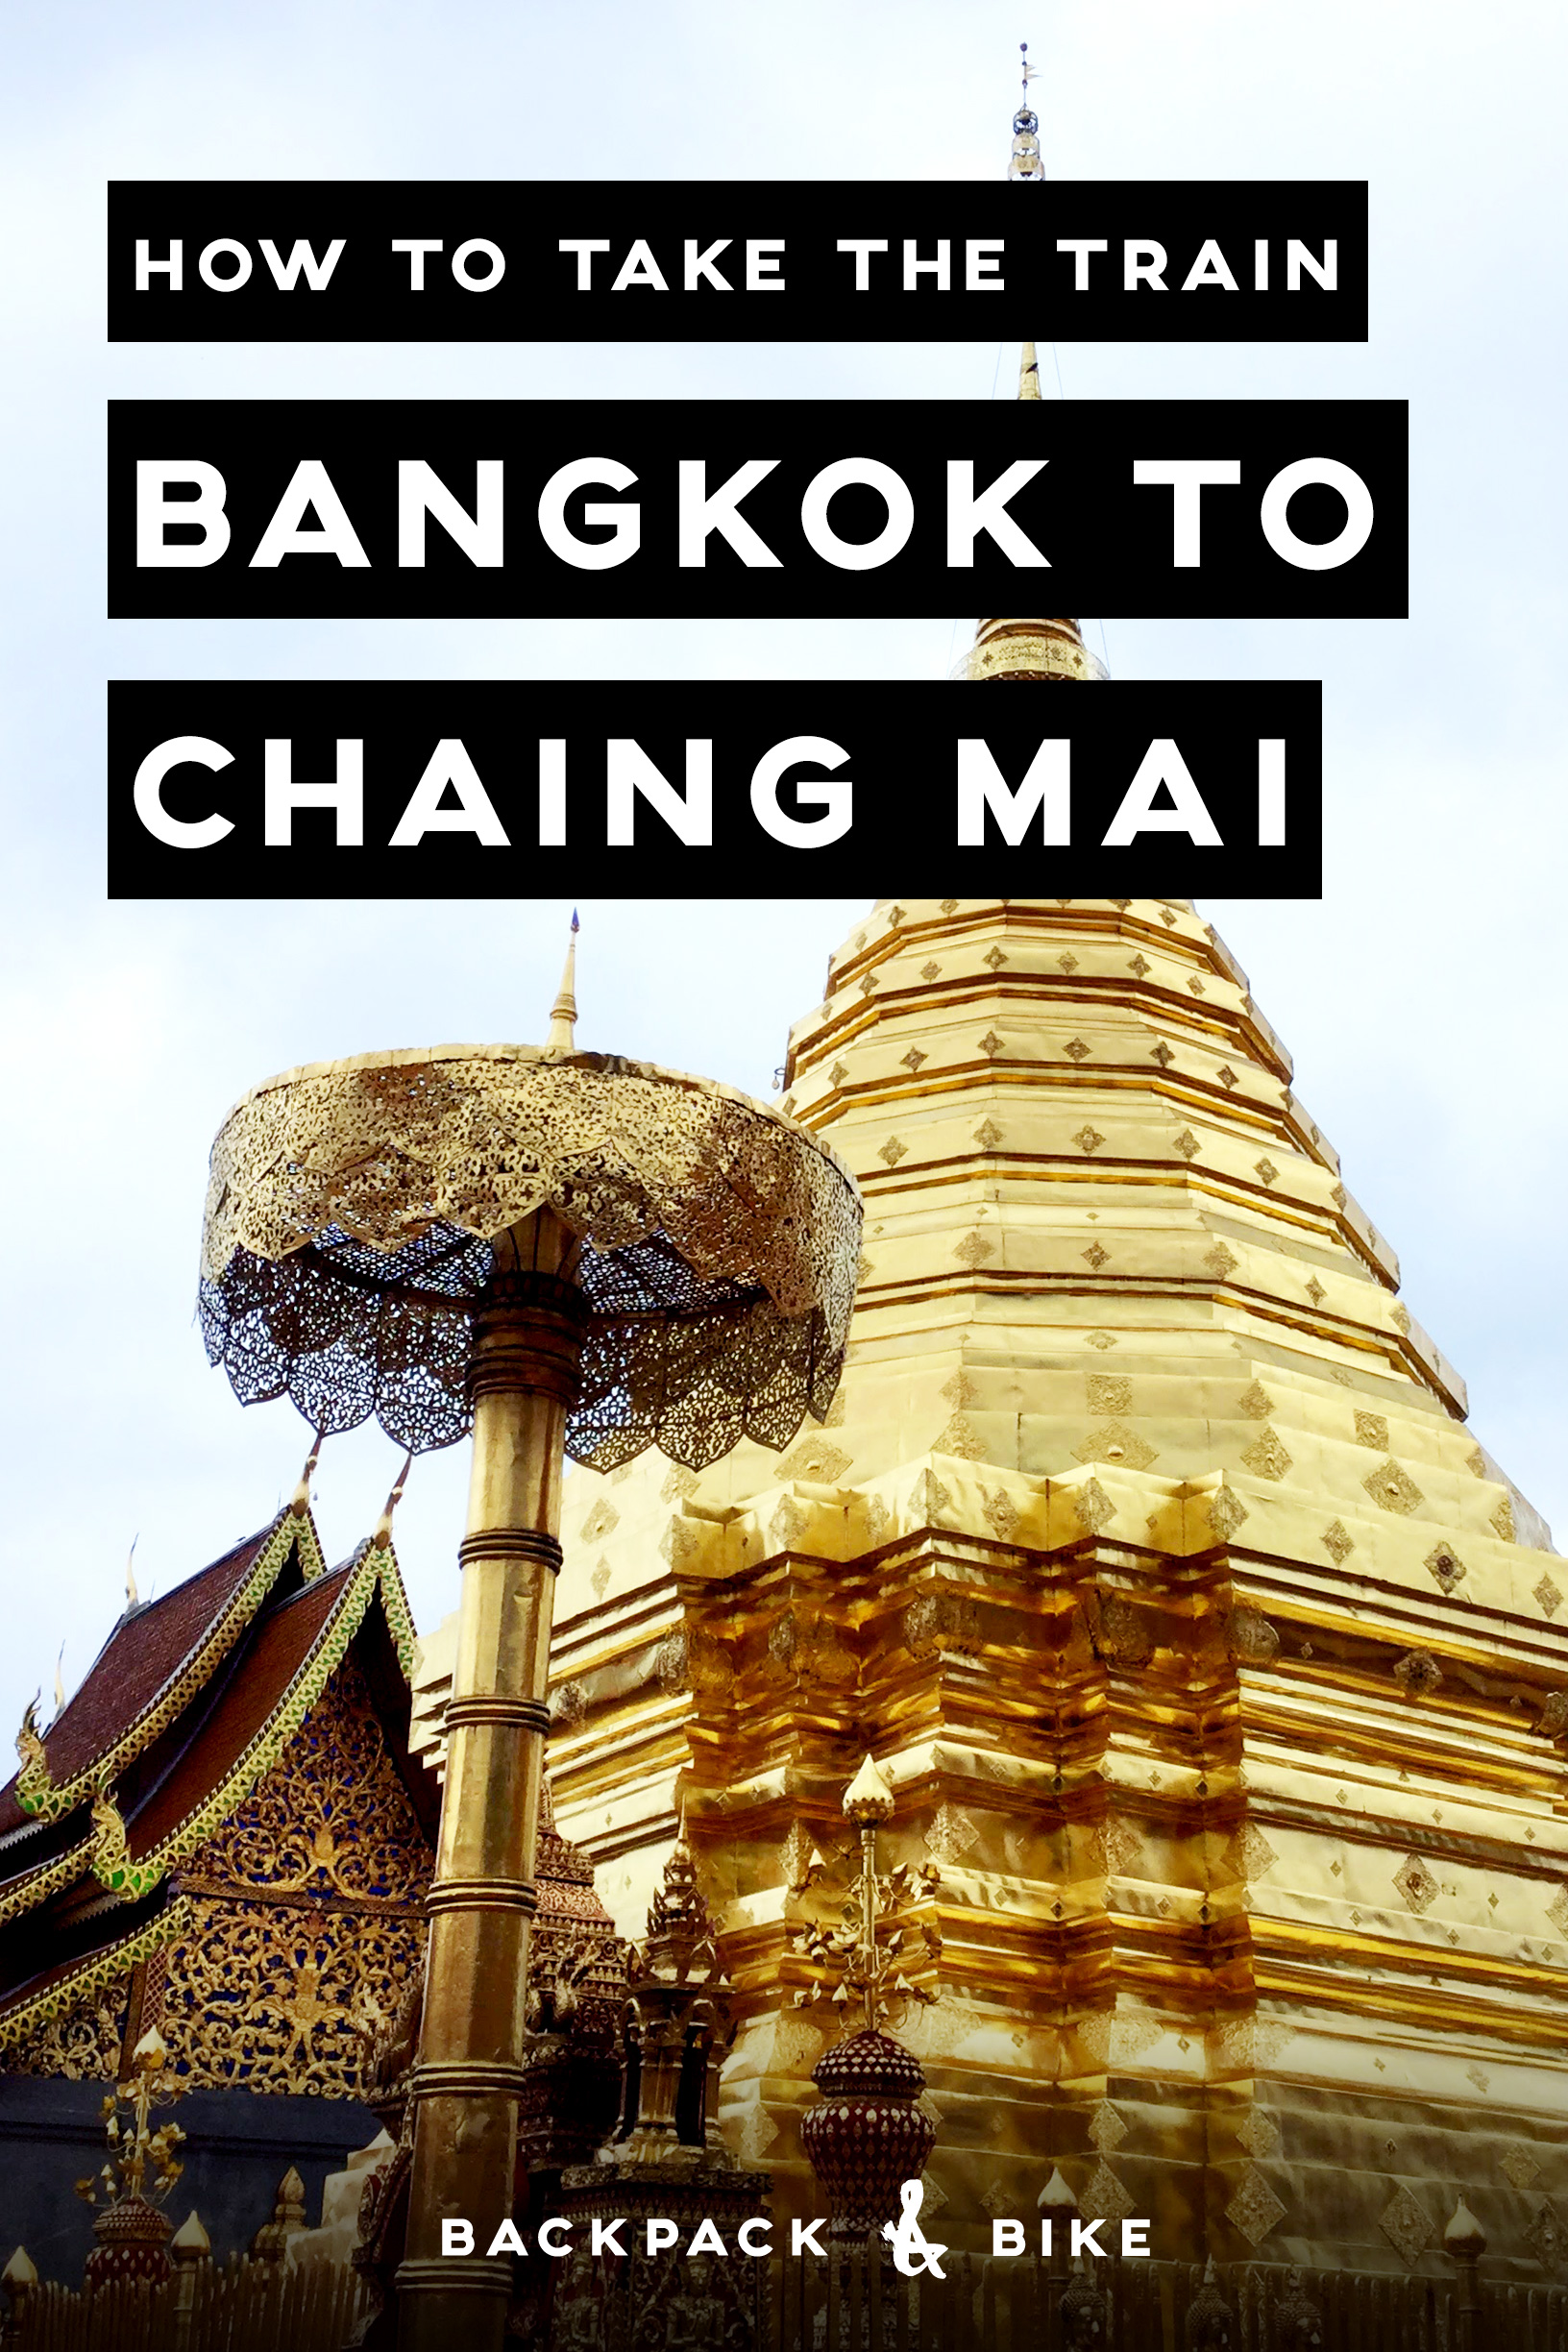 How to take the train Bangkok to Chiang Mai | If you're visiting Thailand, chances are you'll arrive in Bangkok. But you want to get to Chiang Mai? No worries, it's easy. Pin for reference!